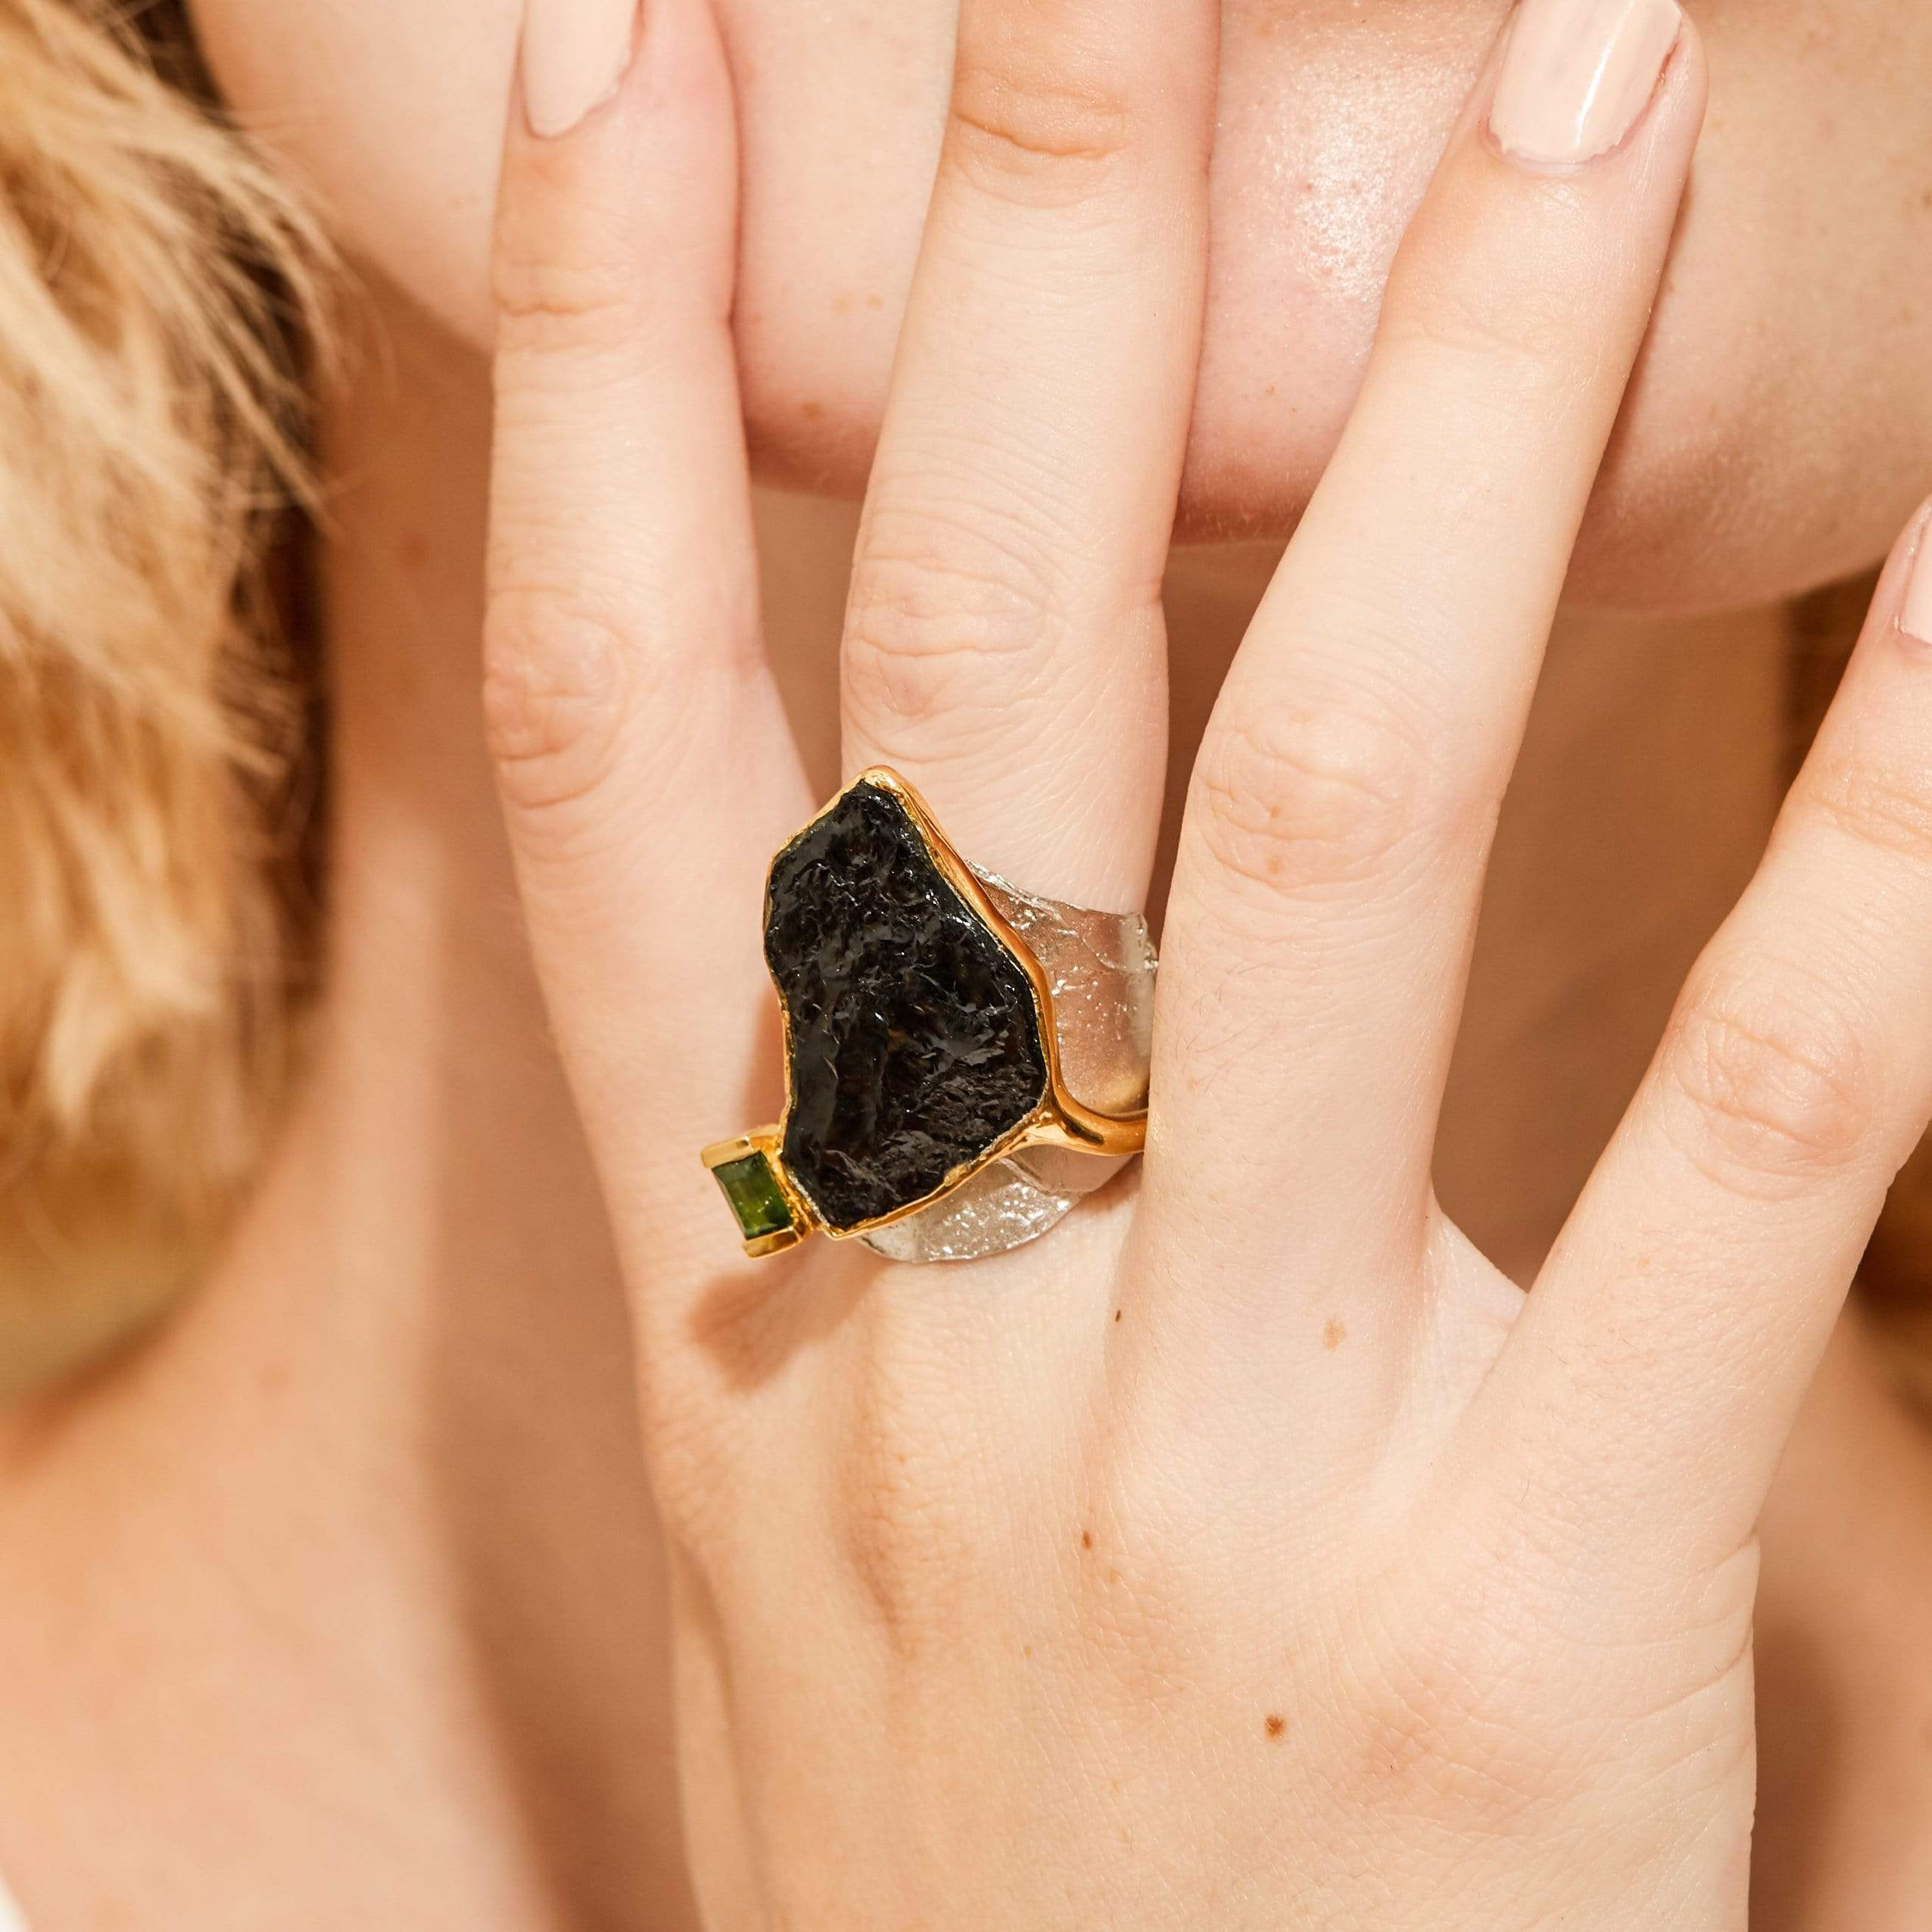 Alia Ring, Exclusive, Gold, gray, Rhodium, spo-disabled, StoneColor:Black, StoneColor:Green, Style:Fantasy, Tourmaline, Type:LargeSoloStone Ring